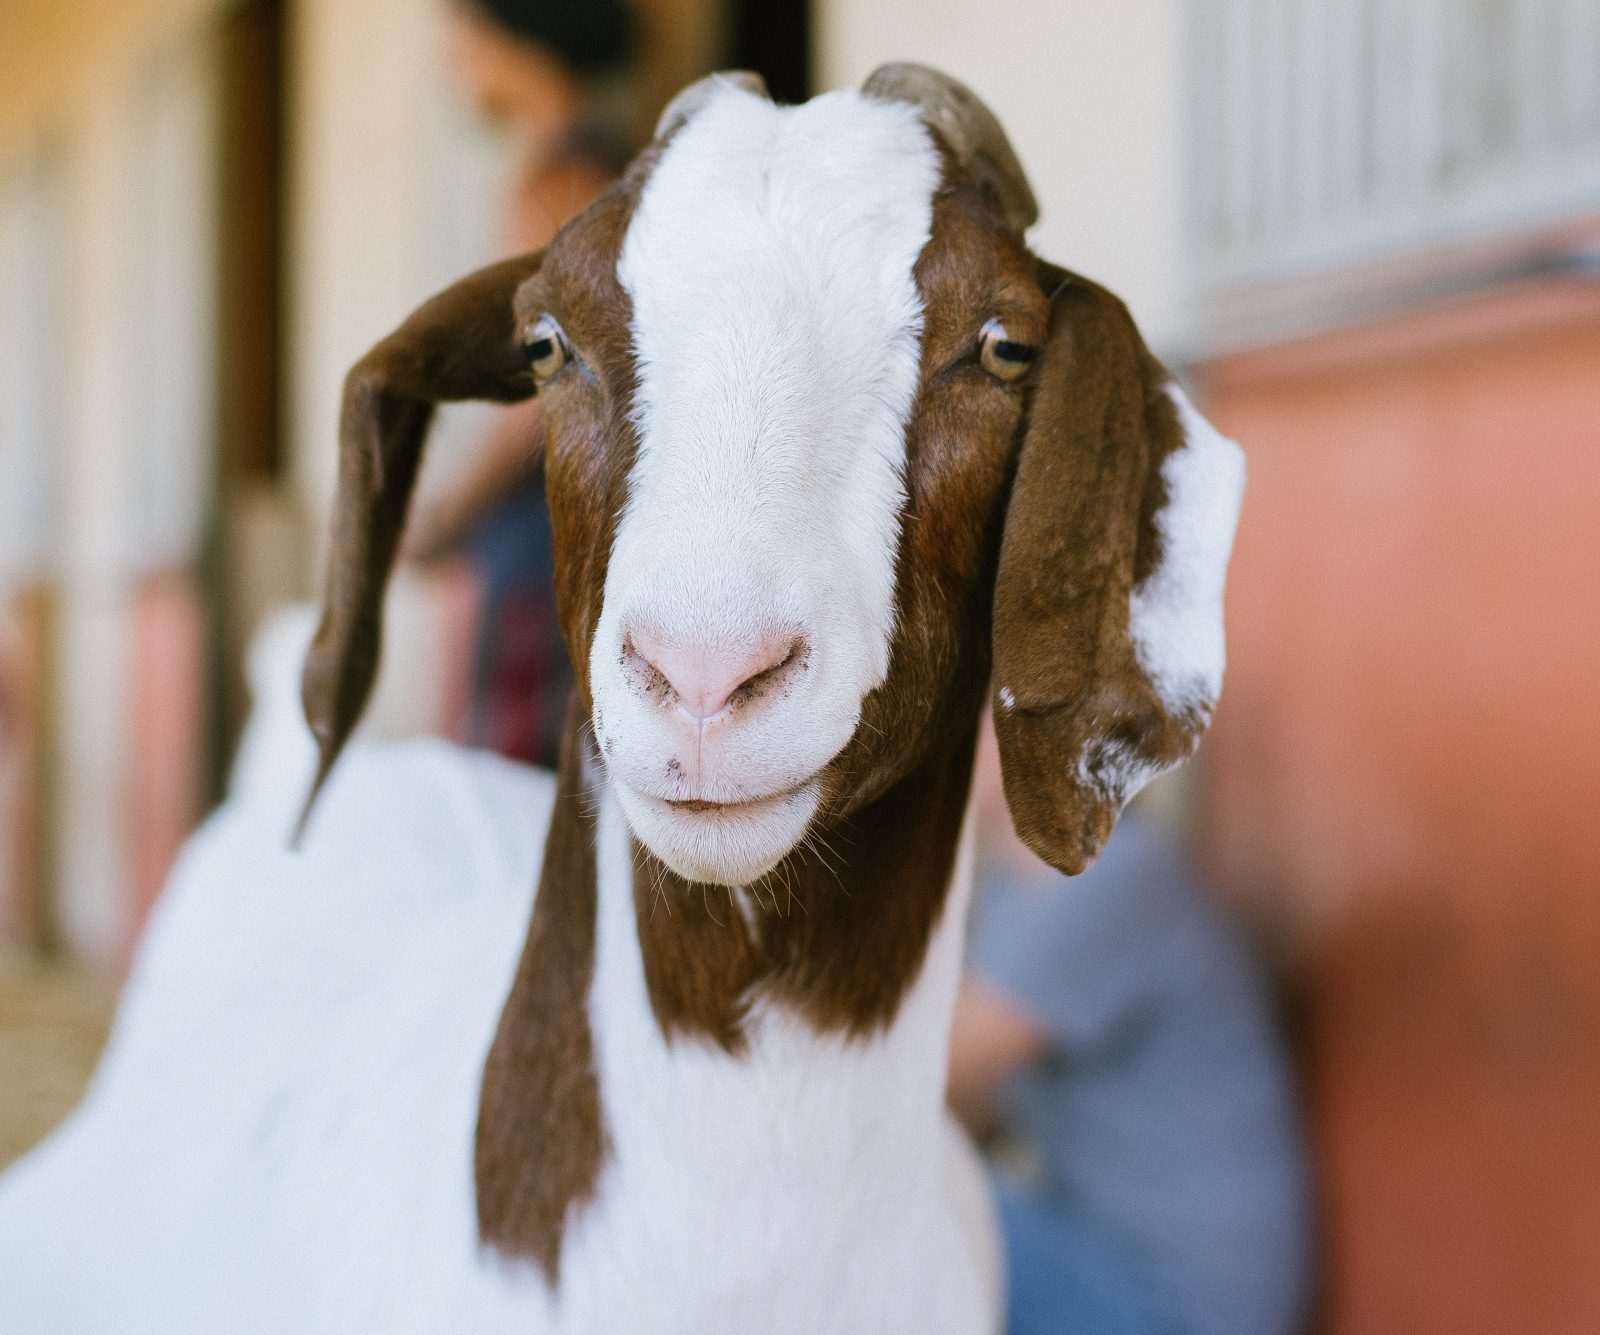 Erika Goat at Farm Sanctuary's Southern California shelter